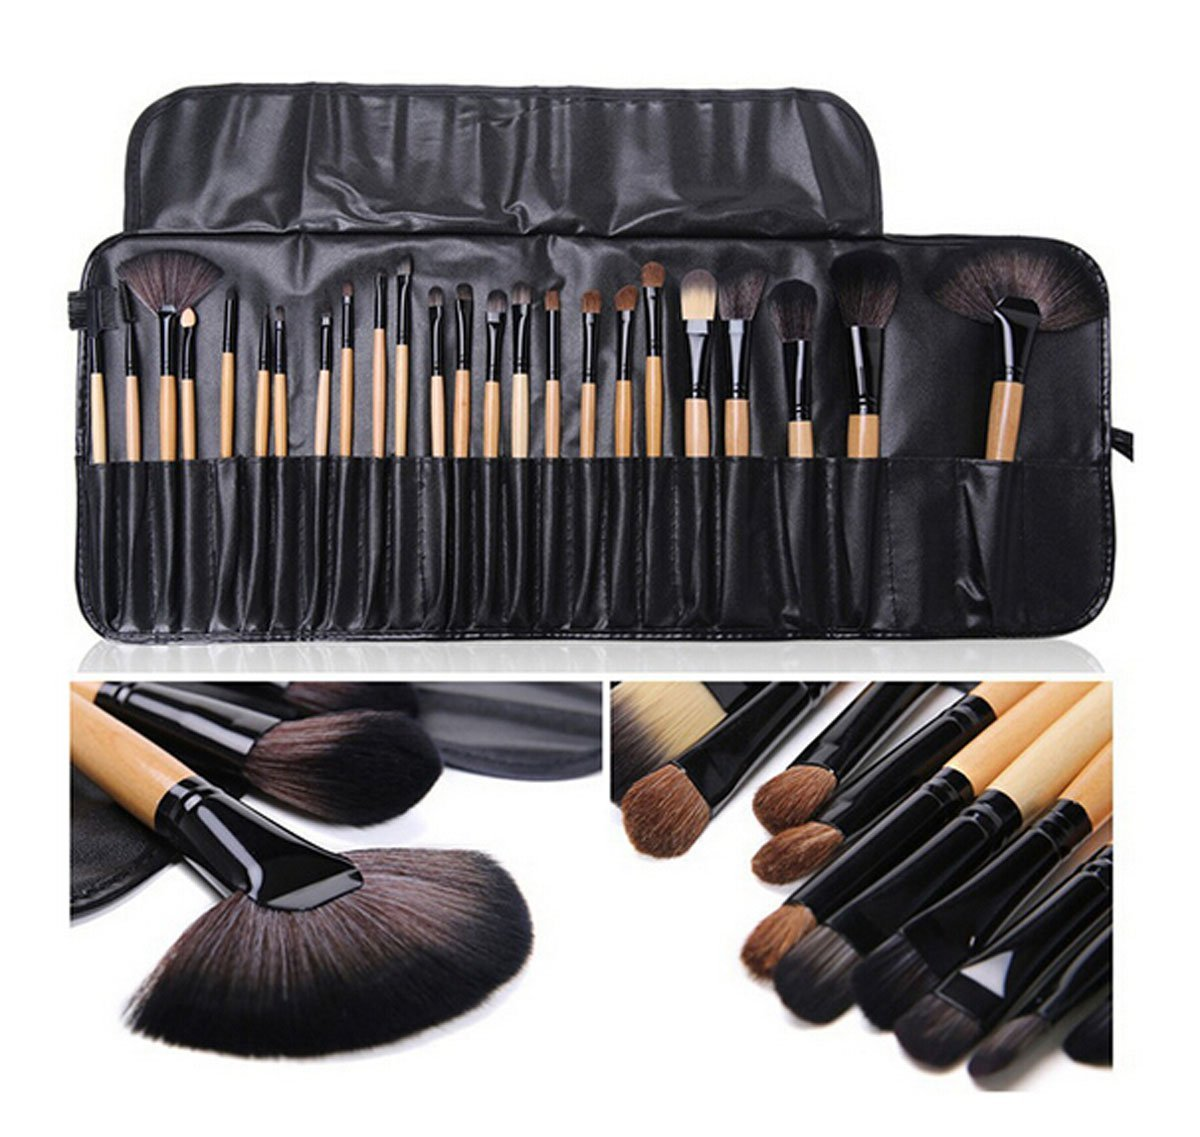 bobbi brown brushes uses. lydia® uk stock professional 24pcs natural wooden handle black/brown make up brush set with case: amazon.co.uk: beauty bobbi brown brushes uses h